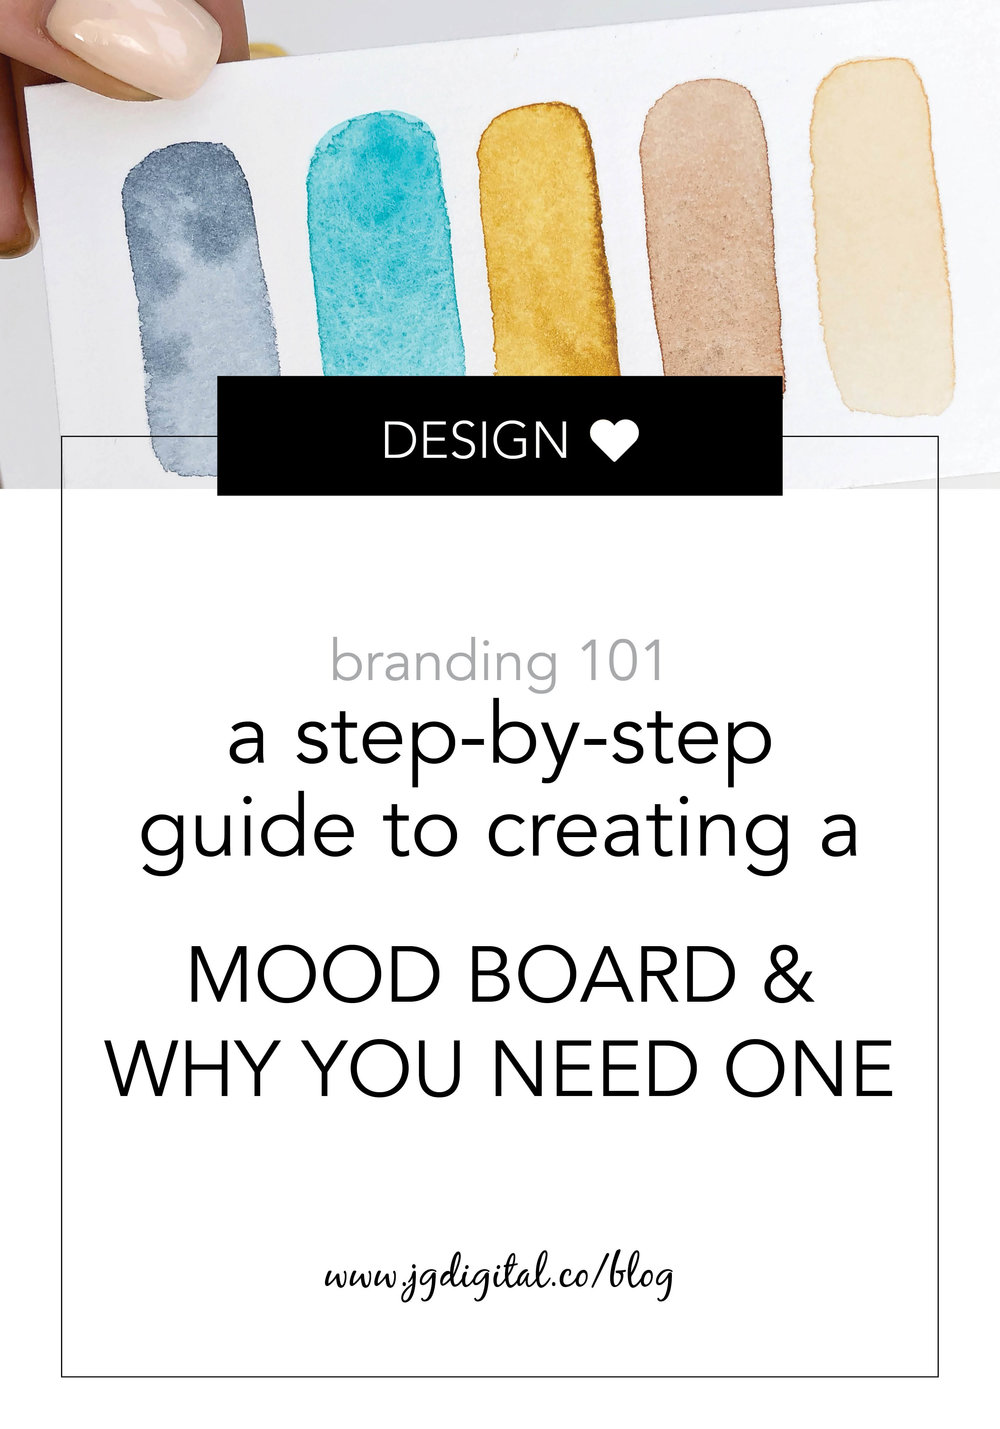 Learn How to Create a Custom Mood or Vision Board with our Step-by-Step Guide plus FREE PSD template by jgdigital.co